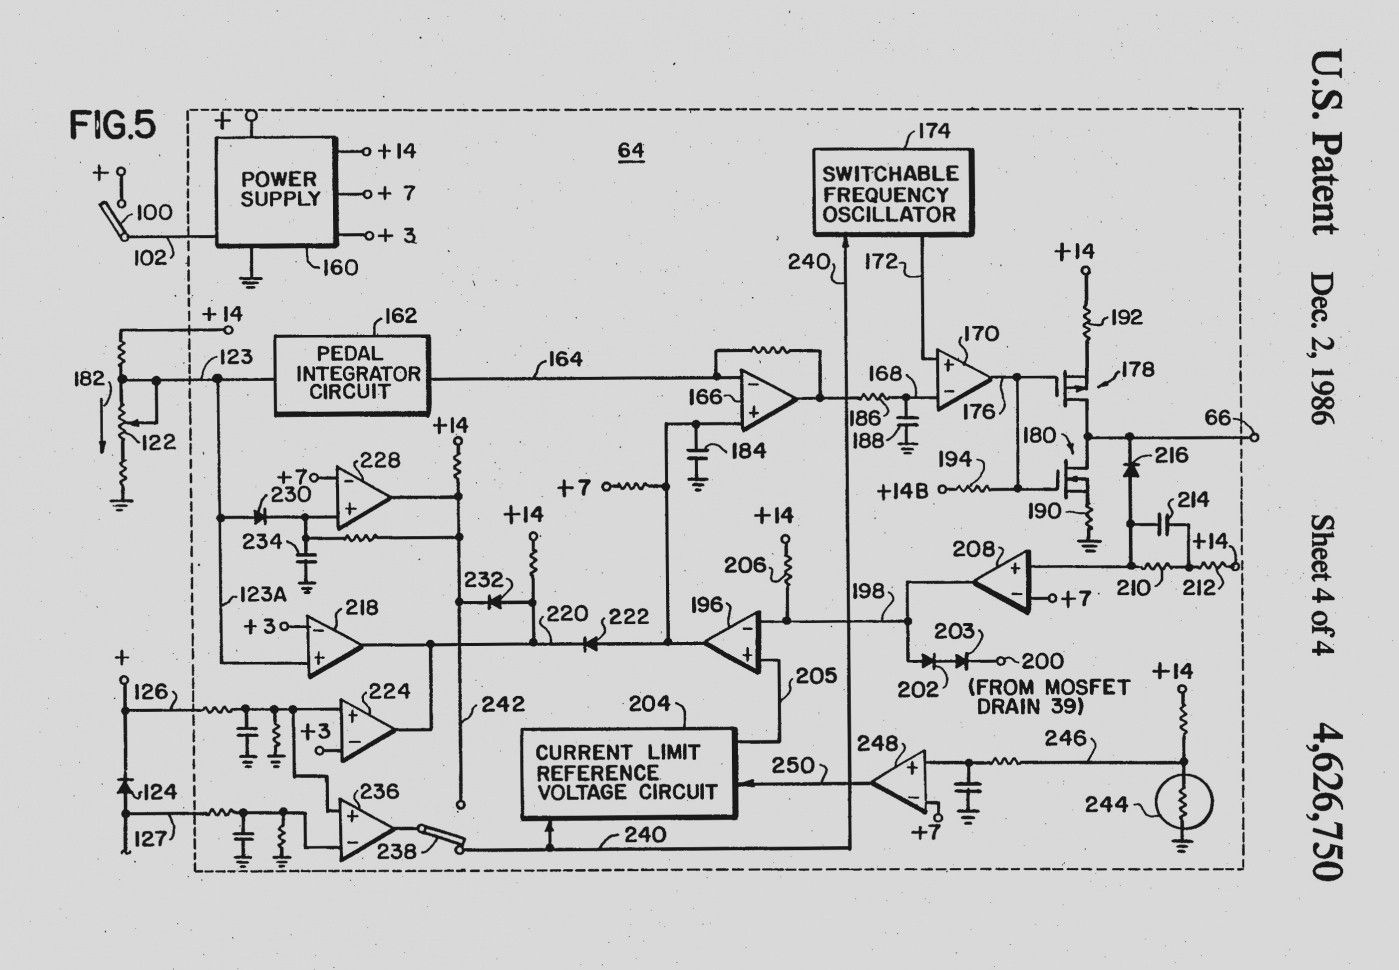 Curtis 1204 Controller Wiring Diagram New In 2020 Go Gas Diagram Wire